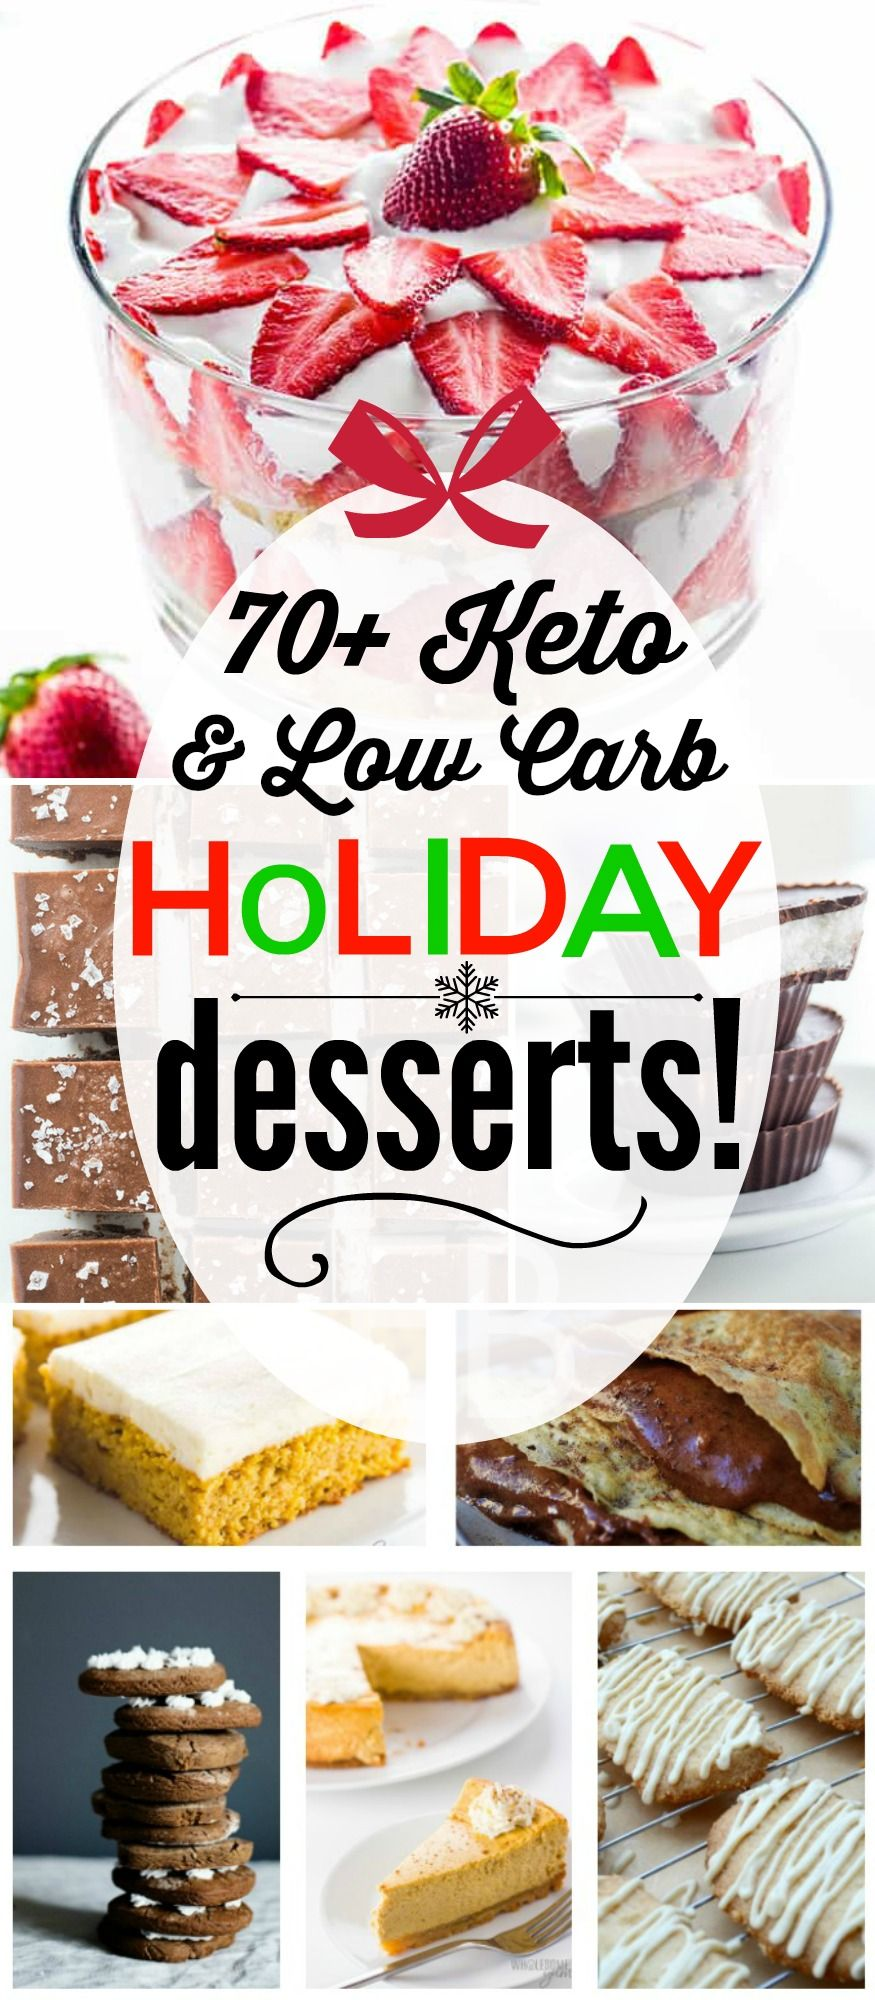 70+ Keto and Low Carb Holiday Desserts Low carb desserts